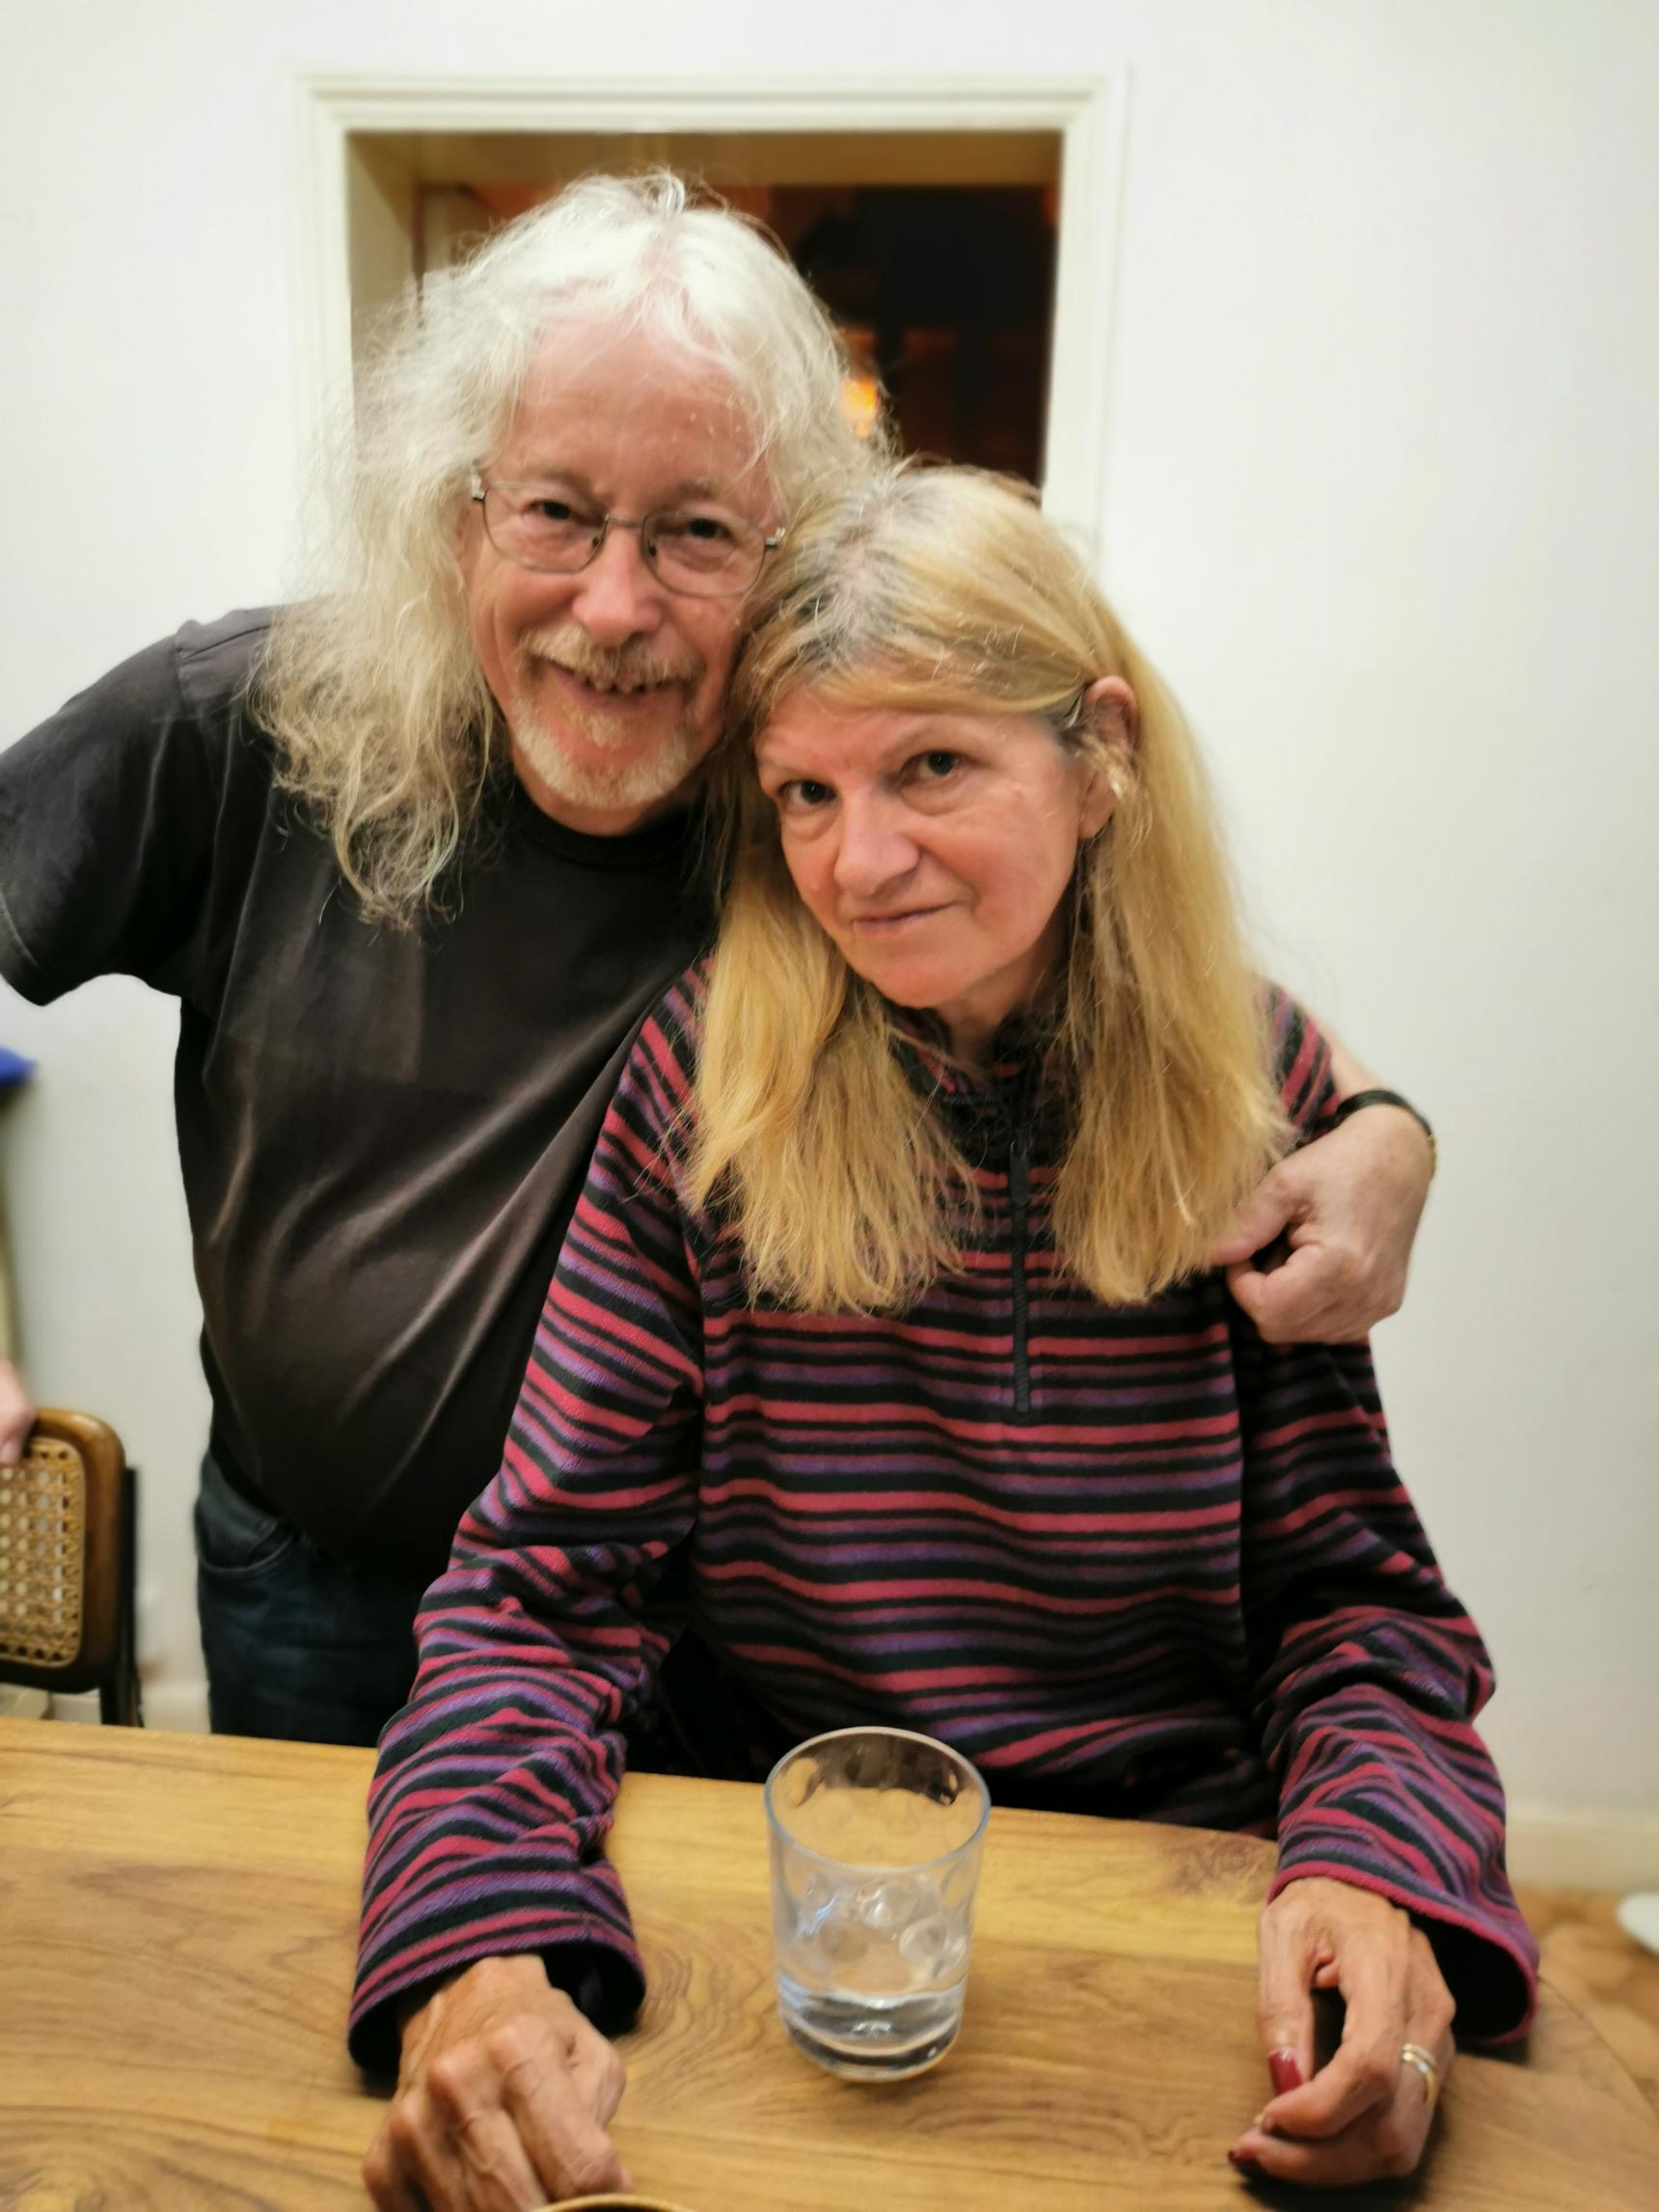 Dave and Bonnie